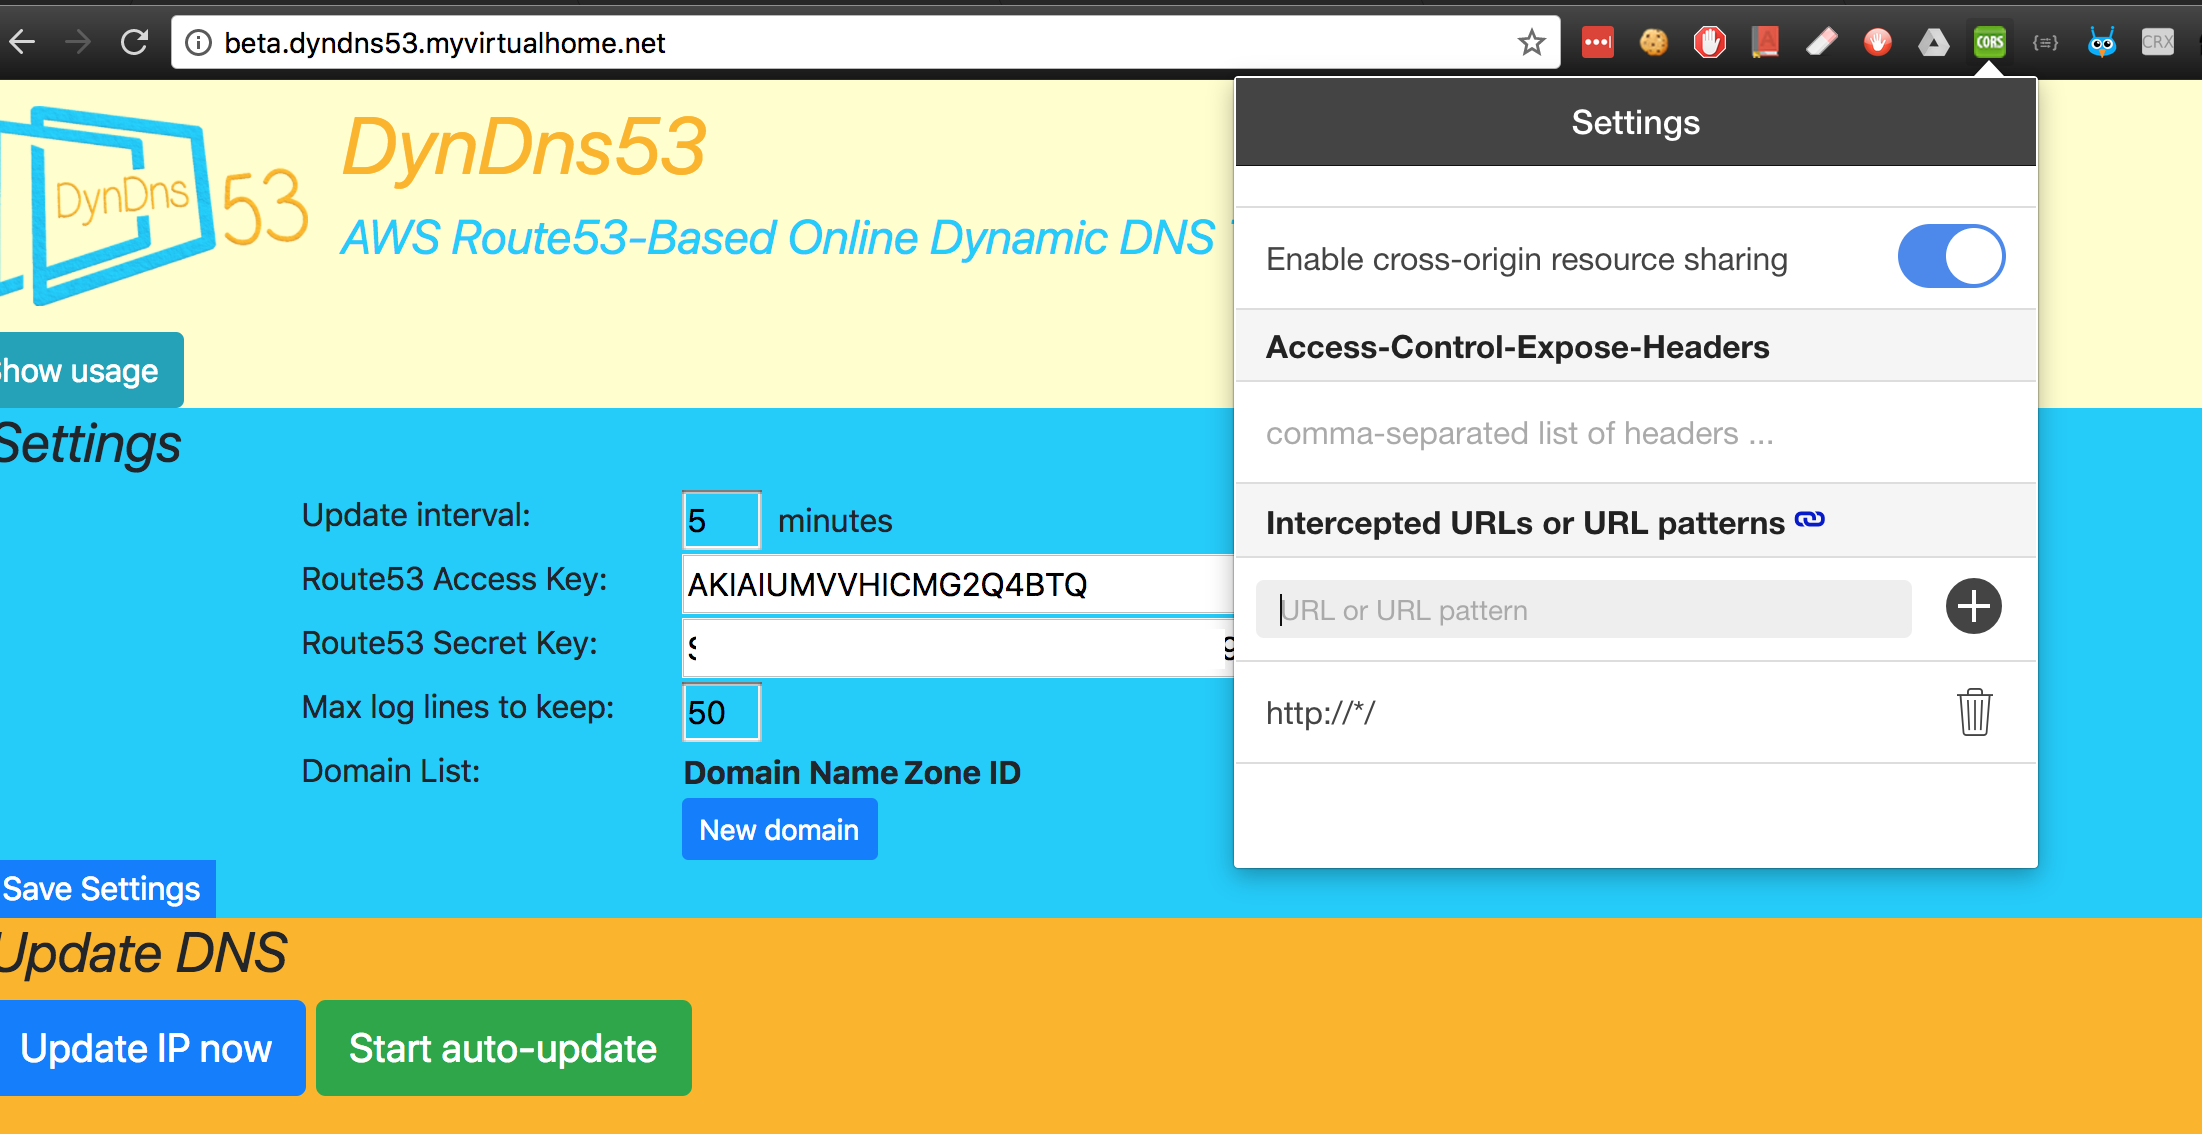 Updated DynDns53 with  NET Core, Docker and Angular 5